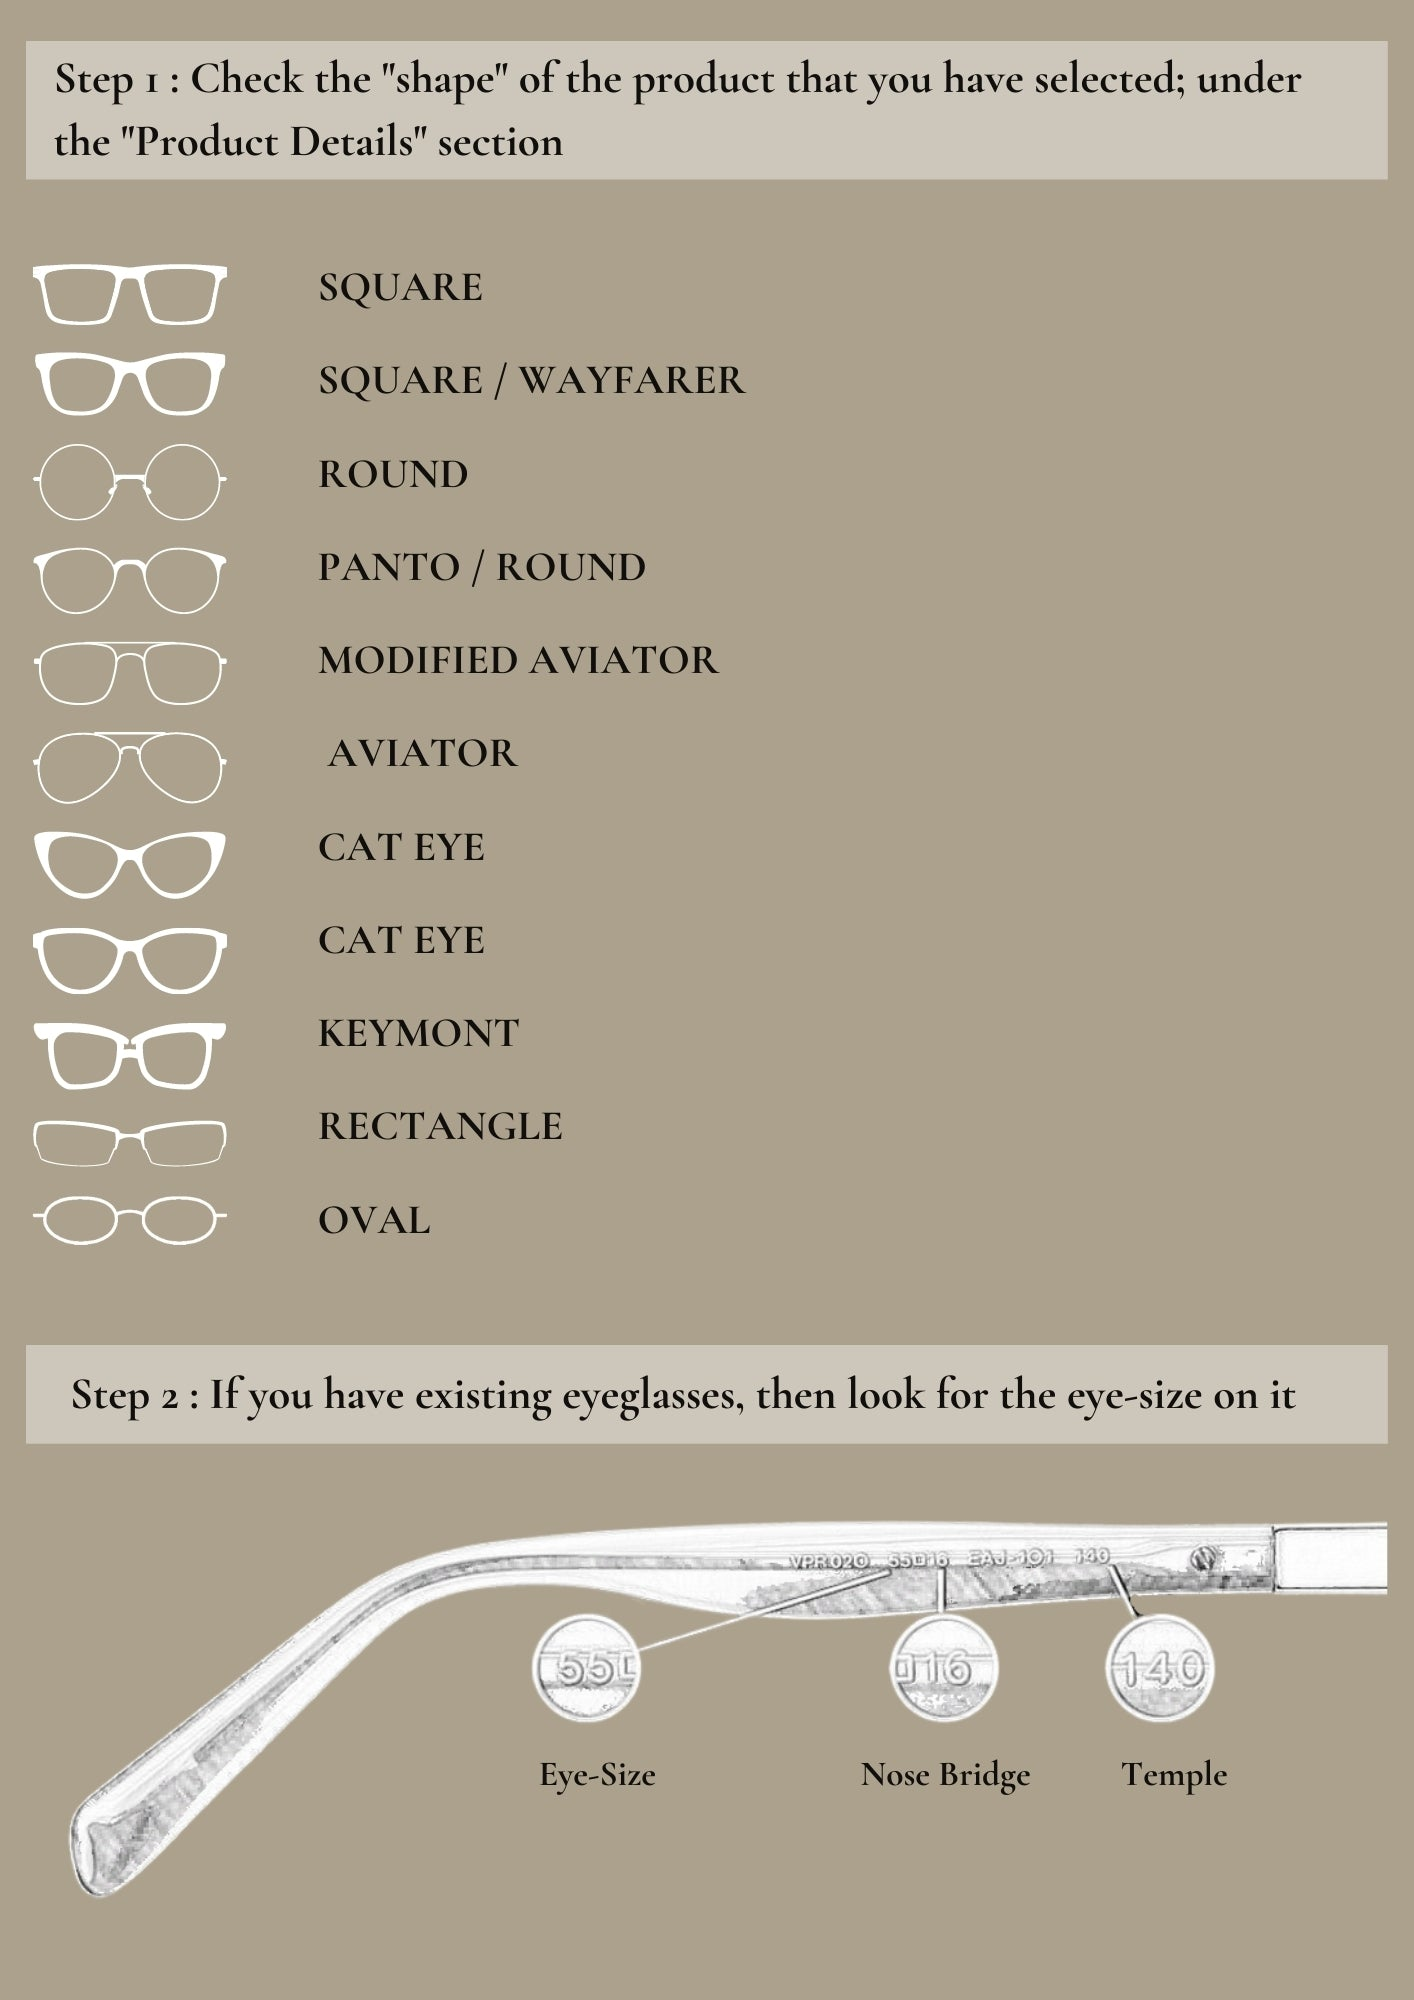 Spectacle-Sunglasses_Eye_Size _Guide-S.R.Gopal Rao Shop-1